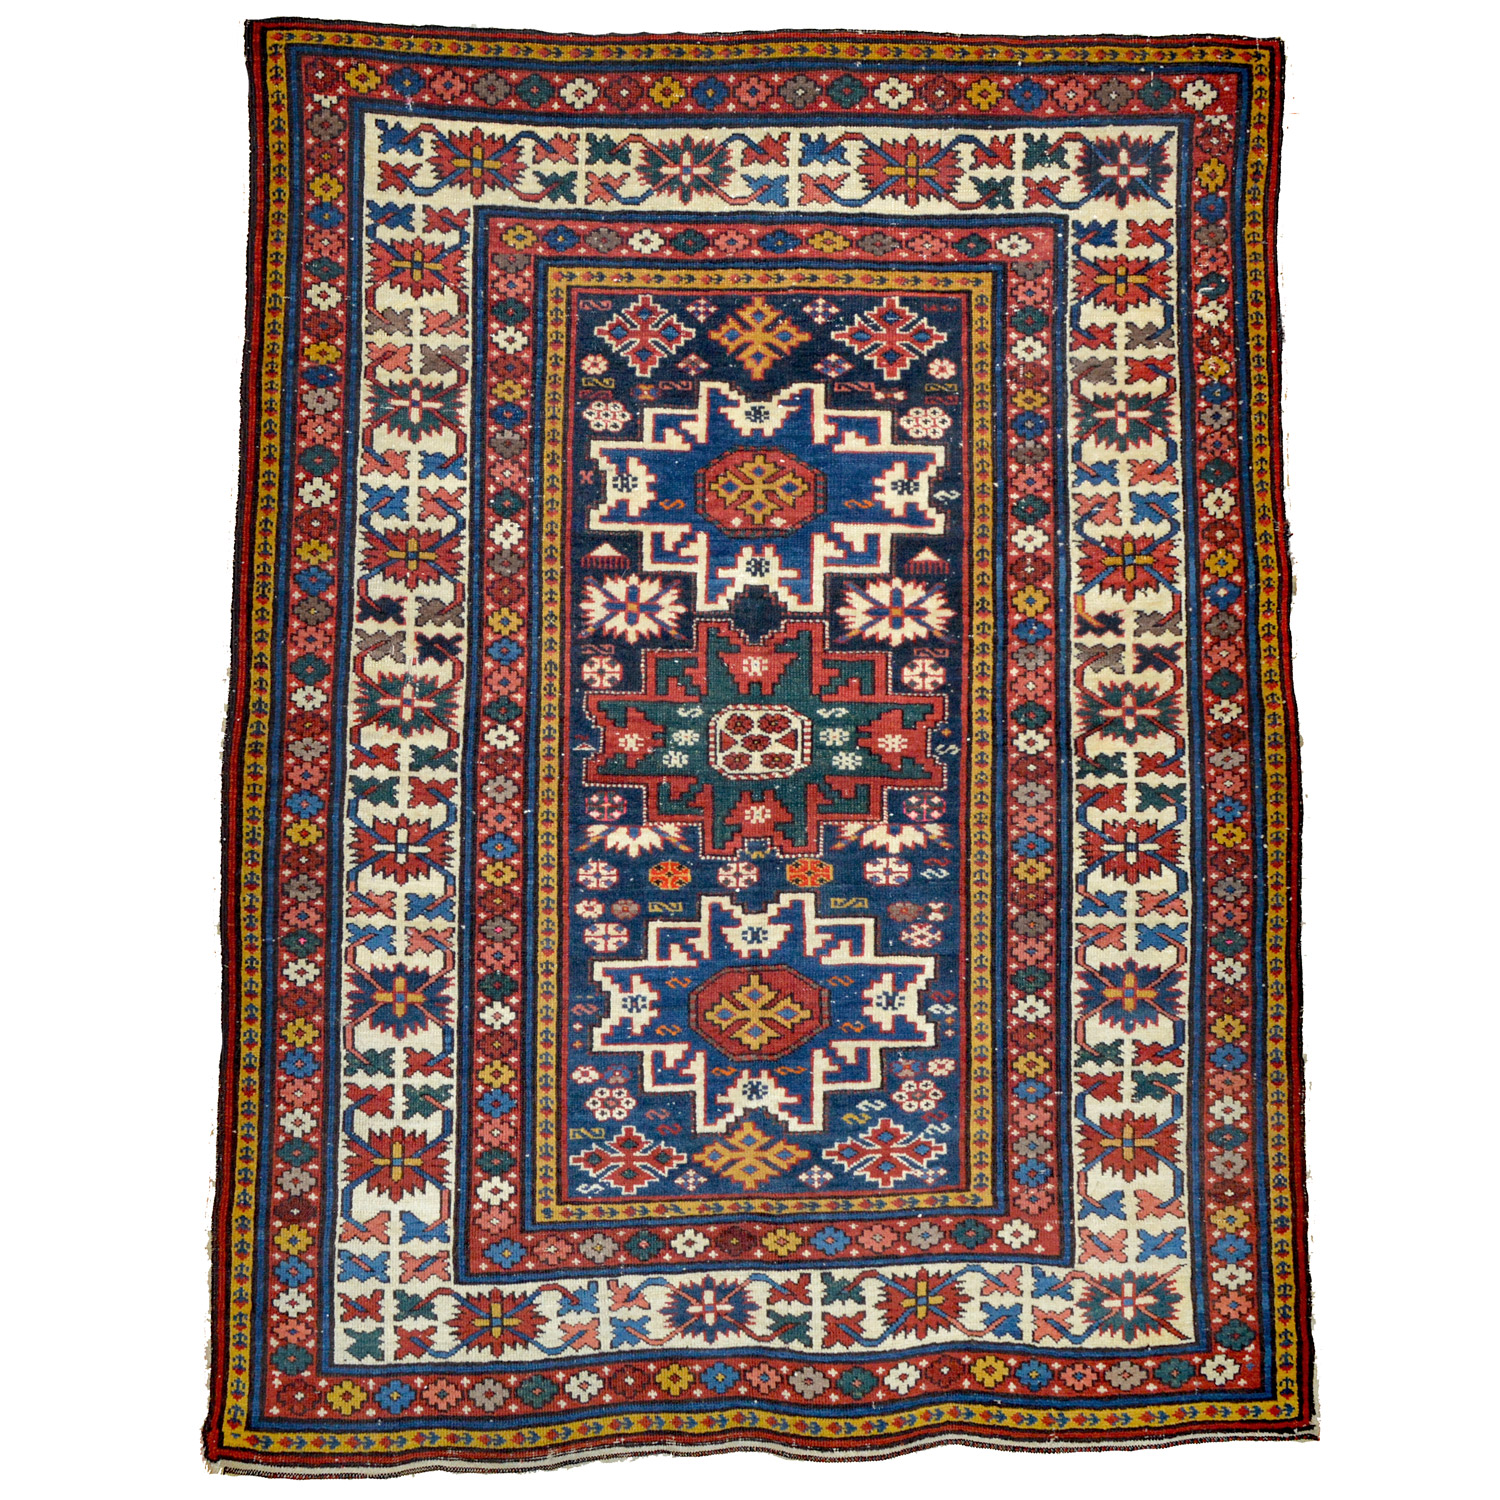 Antique Caucasian Shirvan rug with Lesghi Star design